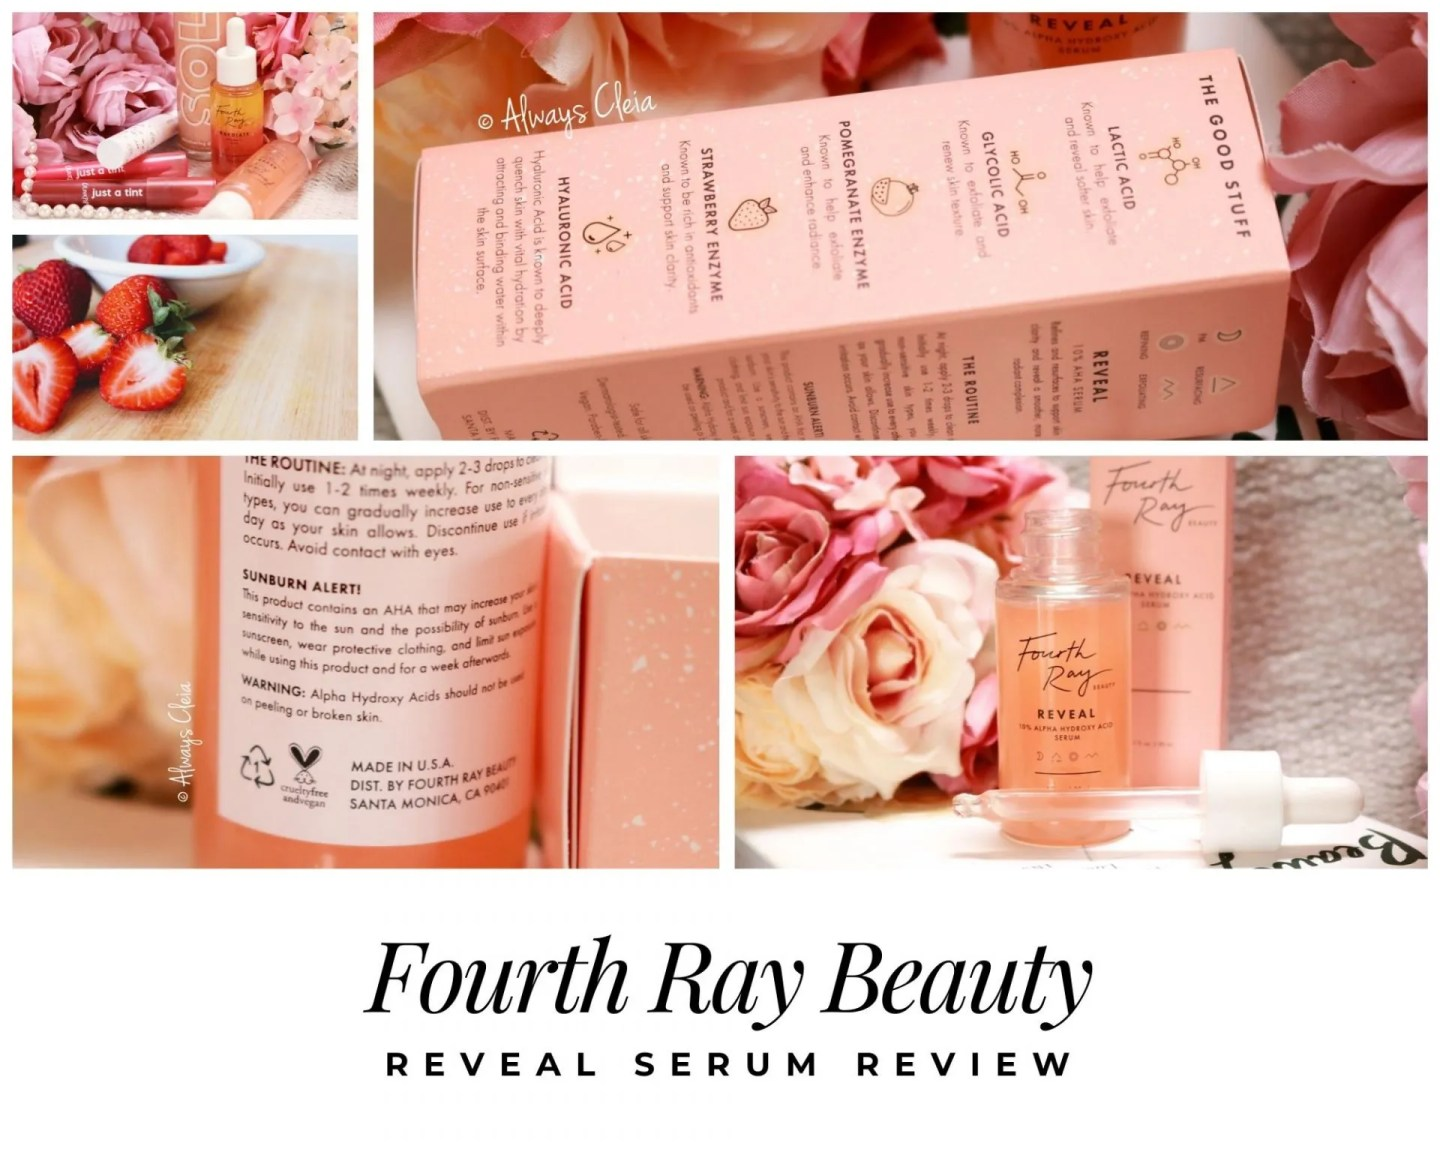 Fourth Ray Beauty Reveal Serum Review